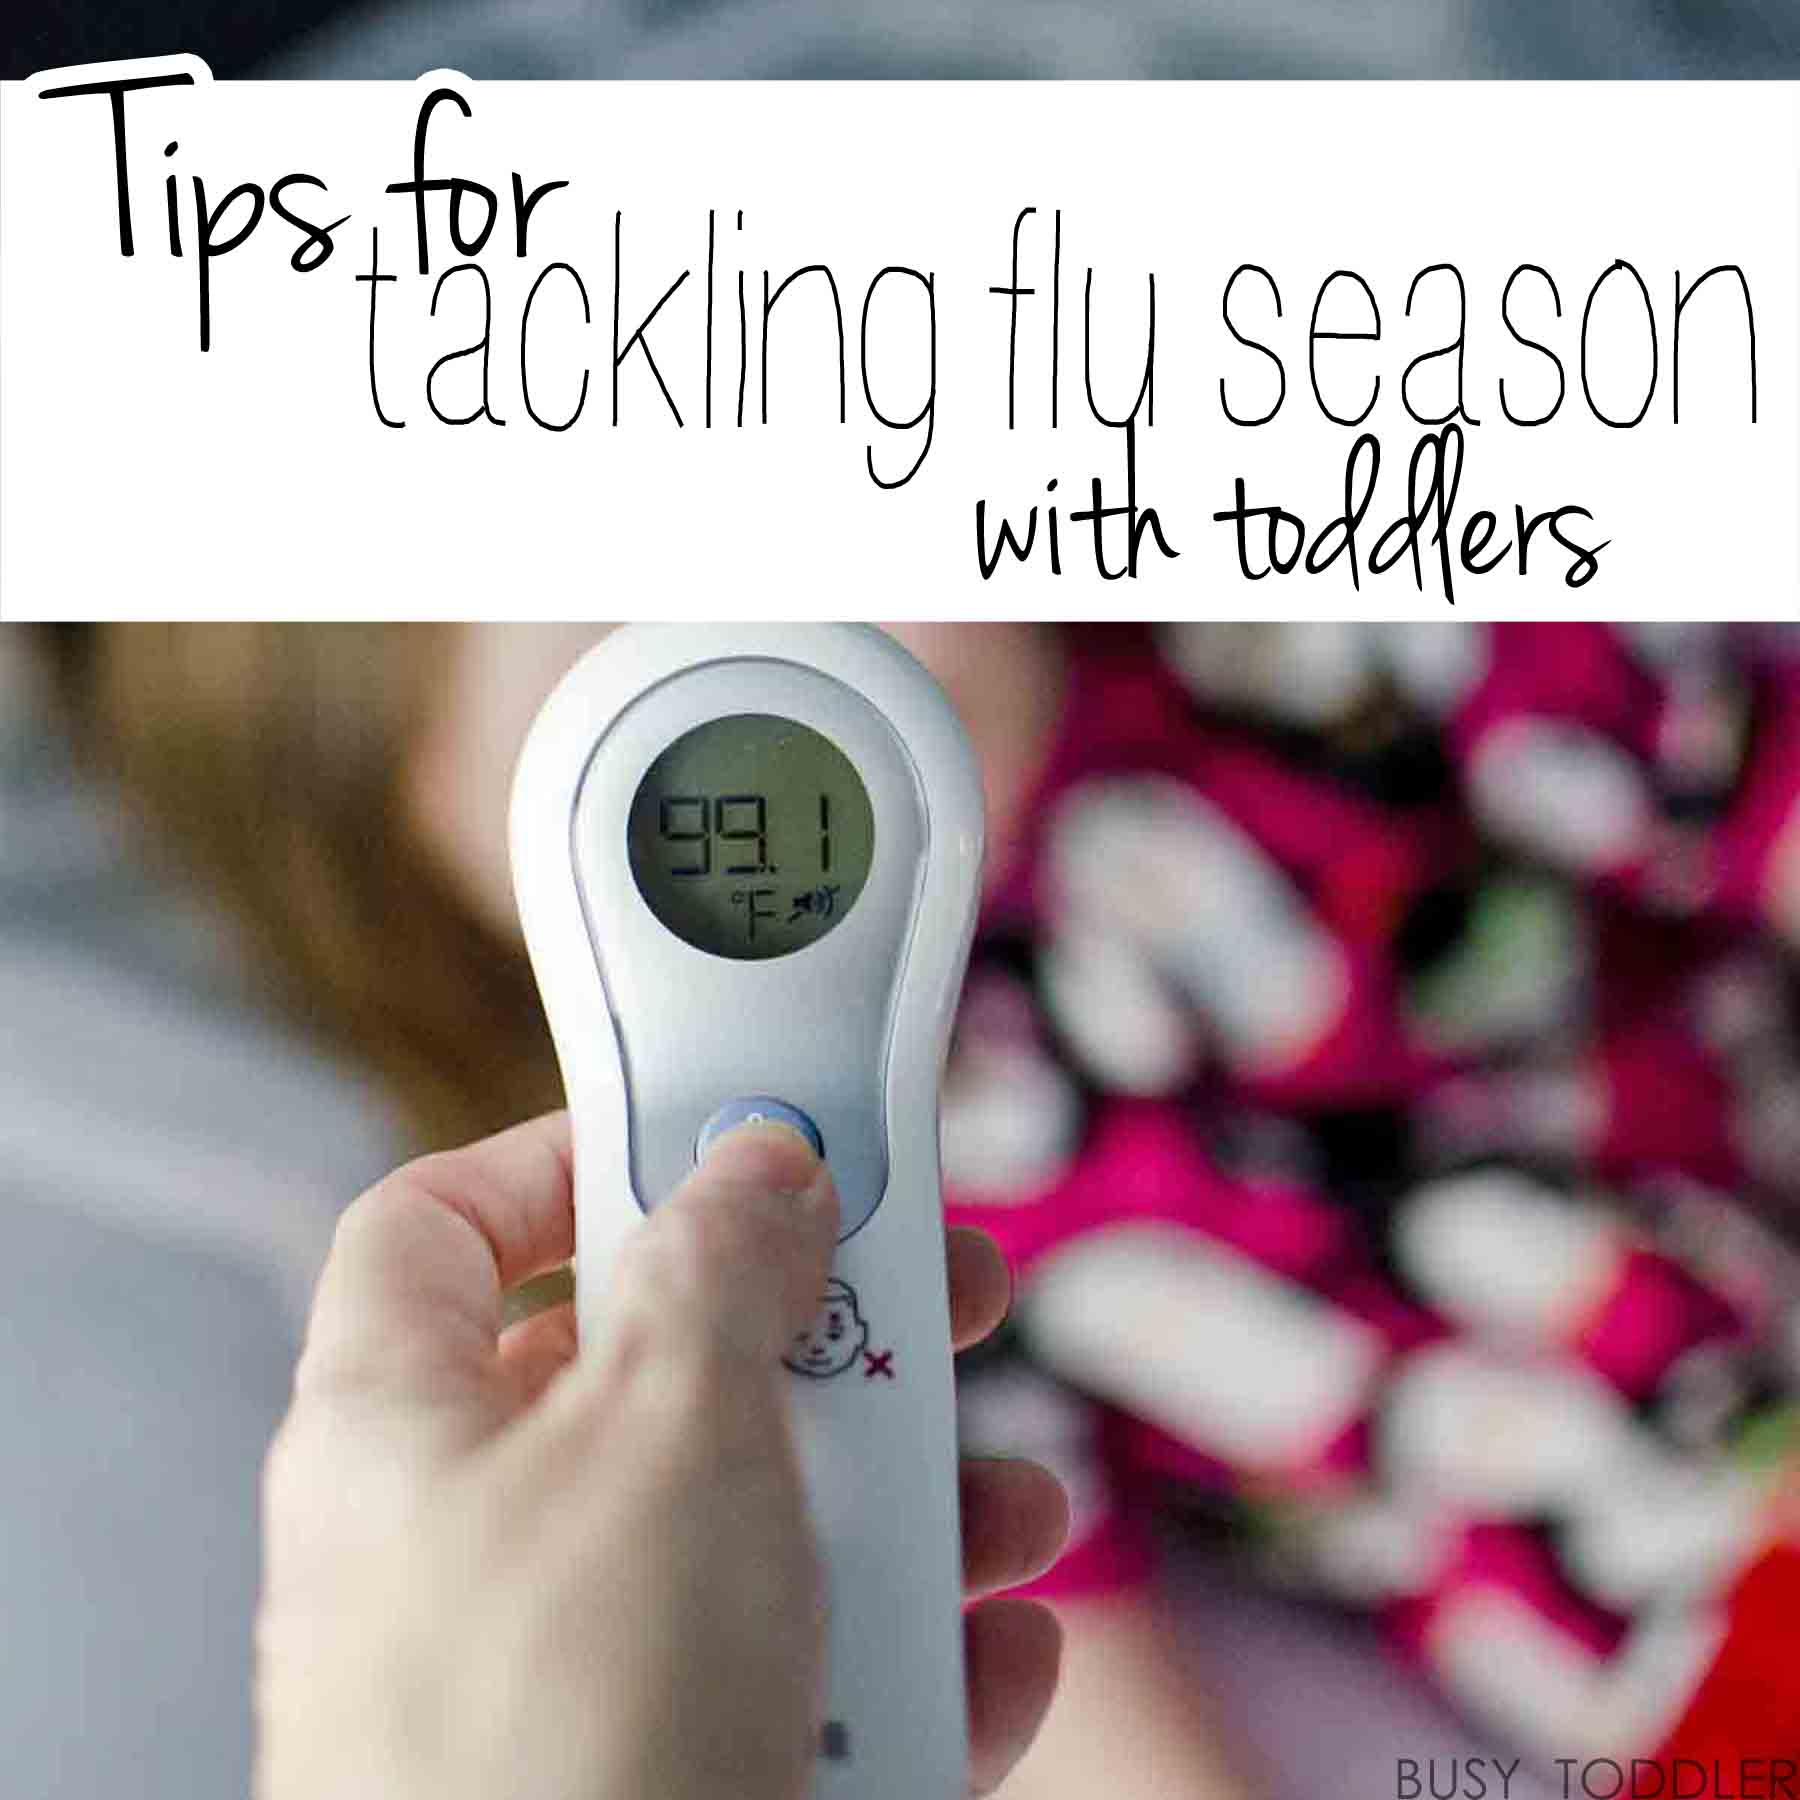 TIPS FOR TACKLING FLU SEASON WITH TODDLERS: Build your Sick Kid Tool Box with these sick toddler activity ideas and Braun thermometers. #ad